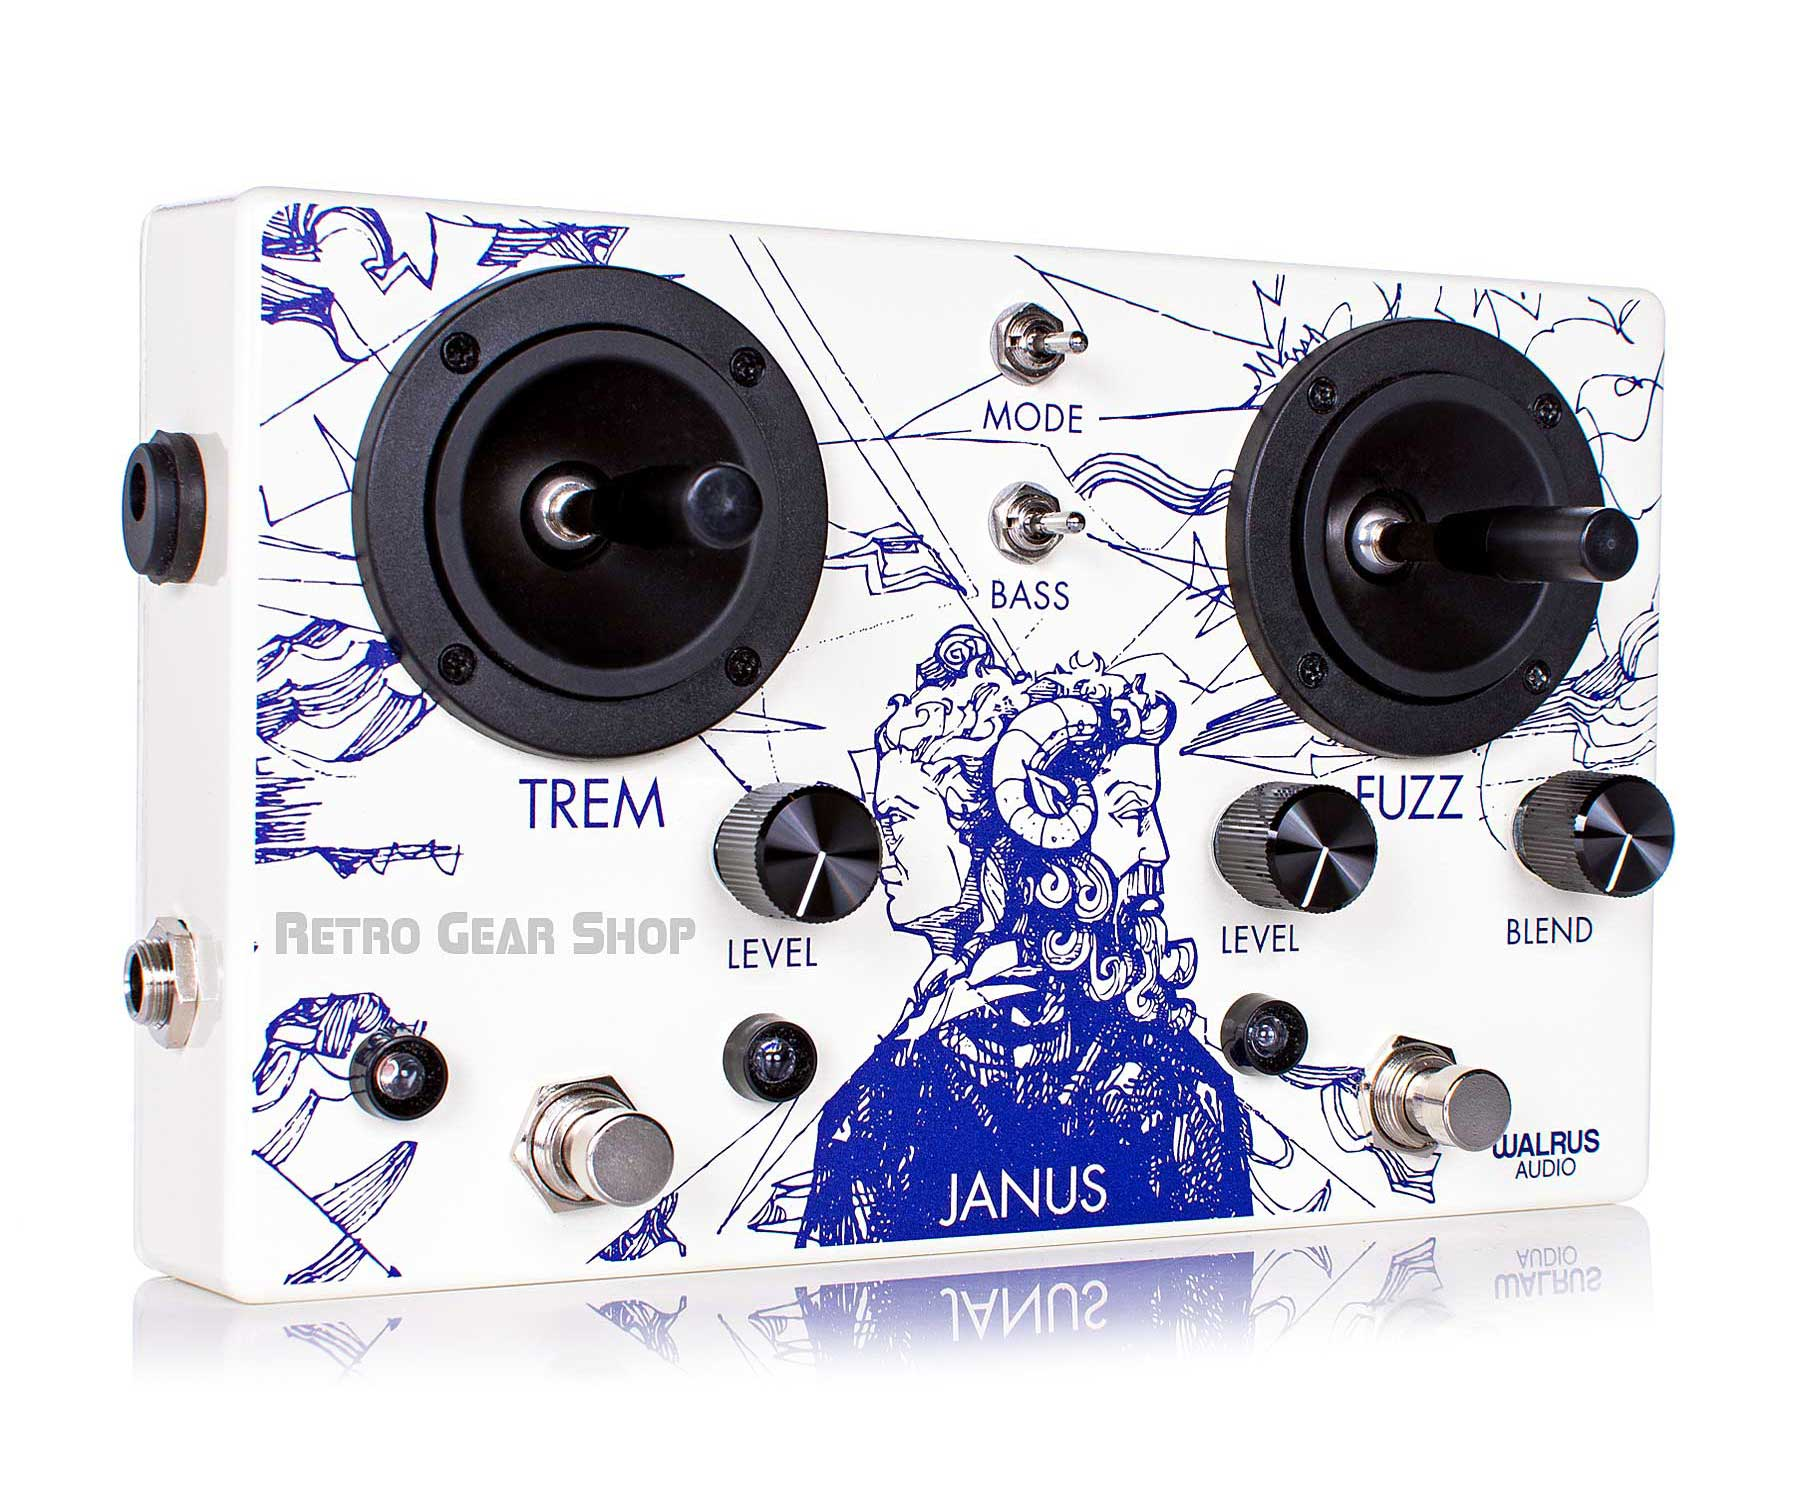 Walrus Audio Janus Fuzz/Tremolo Guitar Effect Pedal